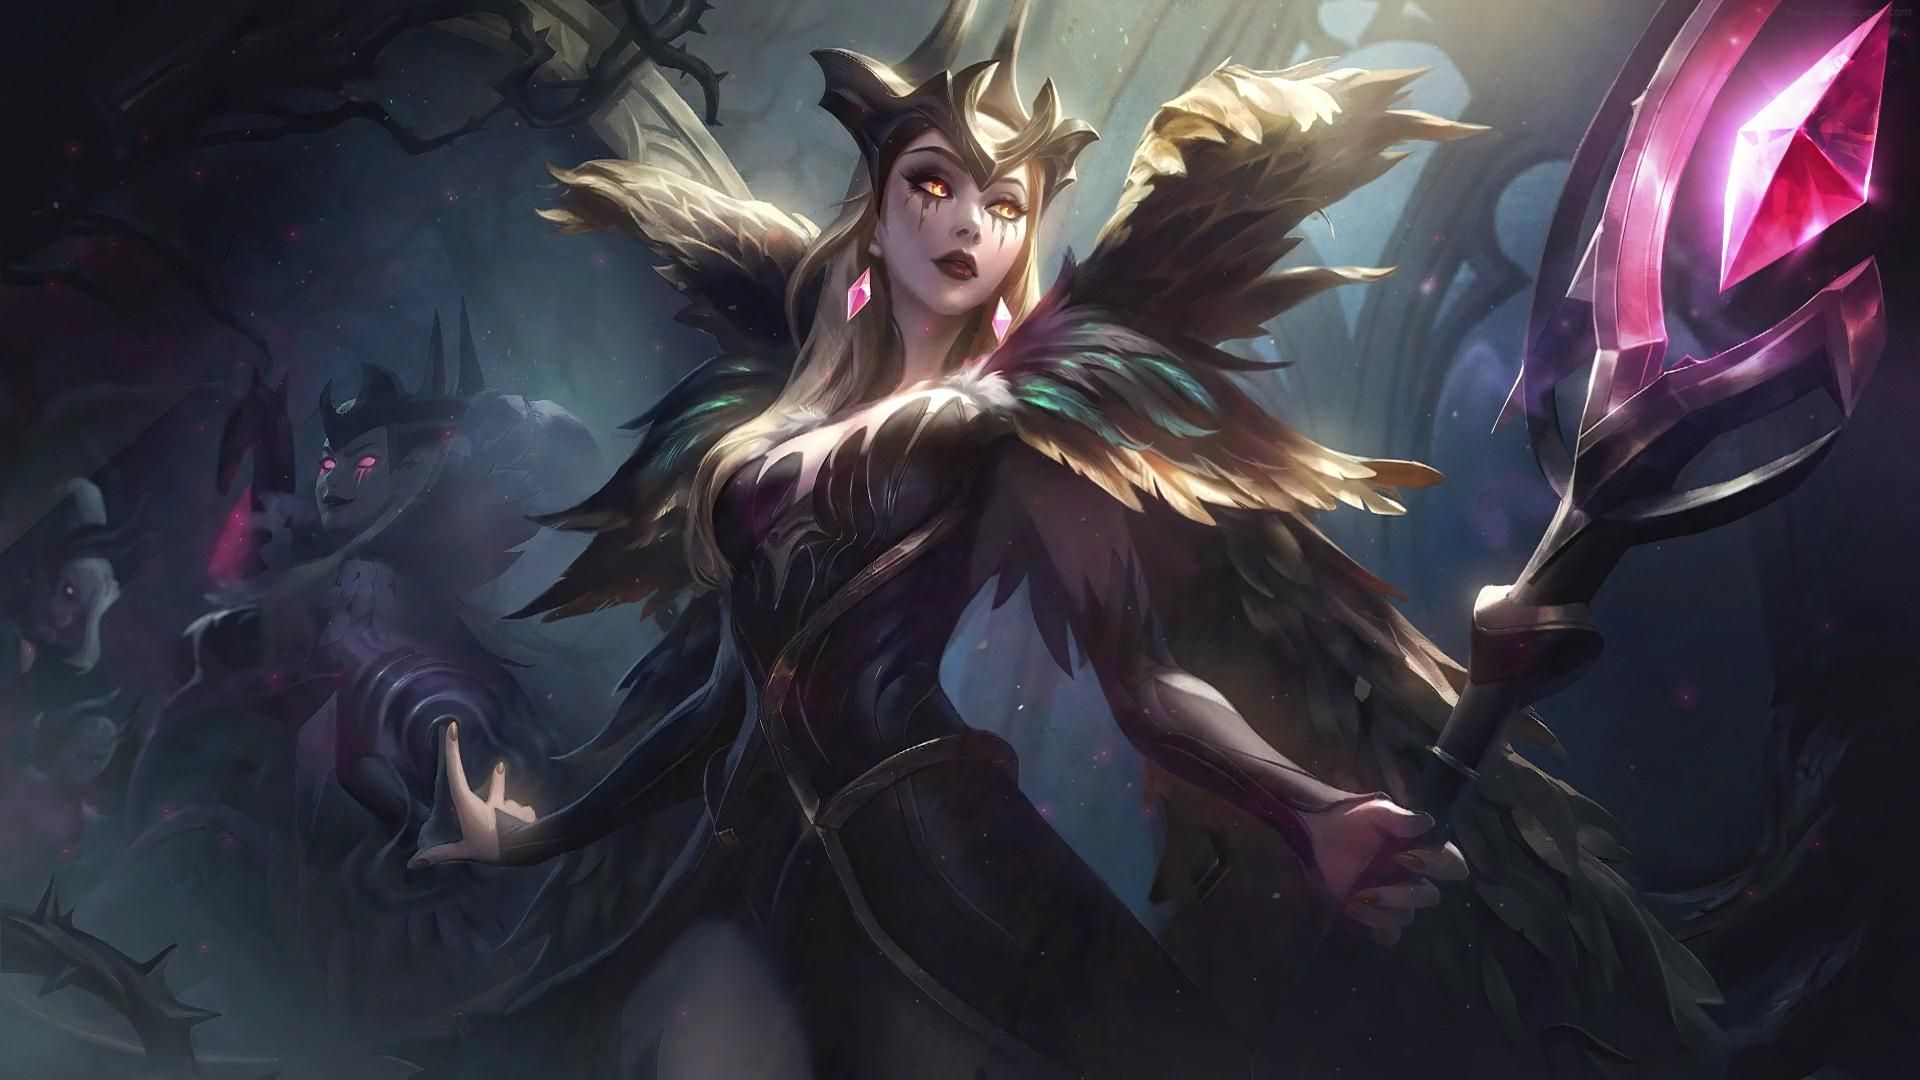 Pin By Guinna On My Gifs Video In 2021 League Of Legends Game Lol League Of Legends League Of Legends Coven zyra league of legends wallpaper